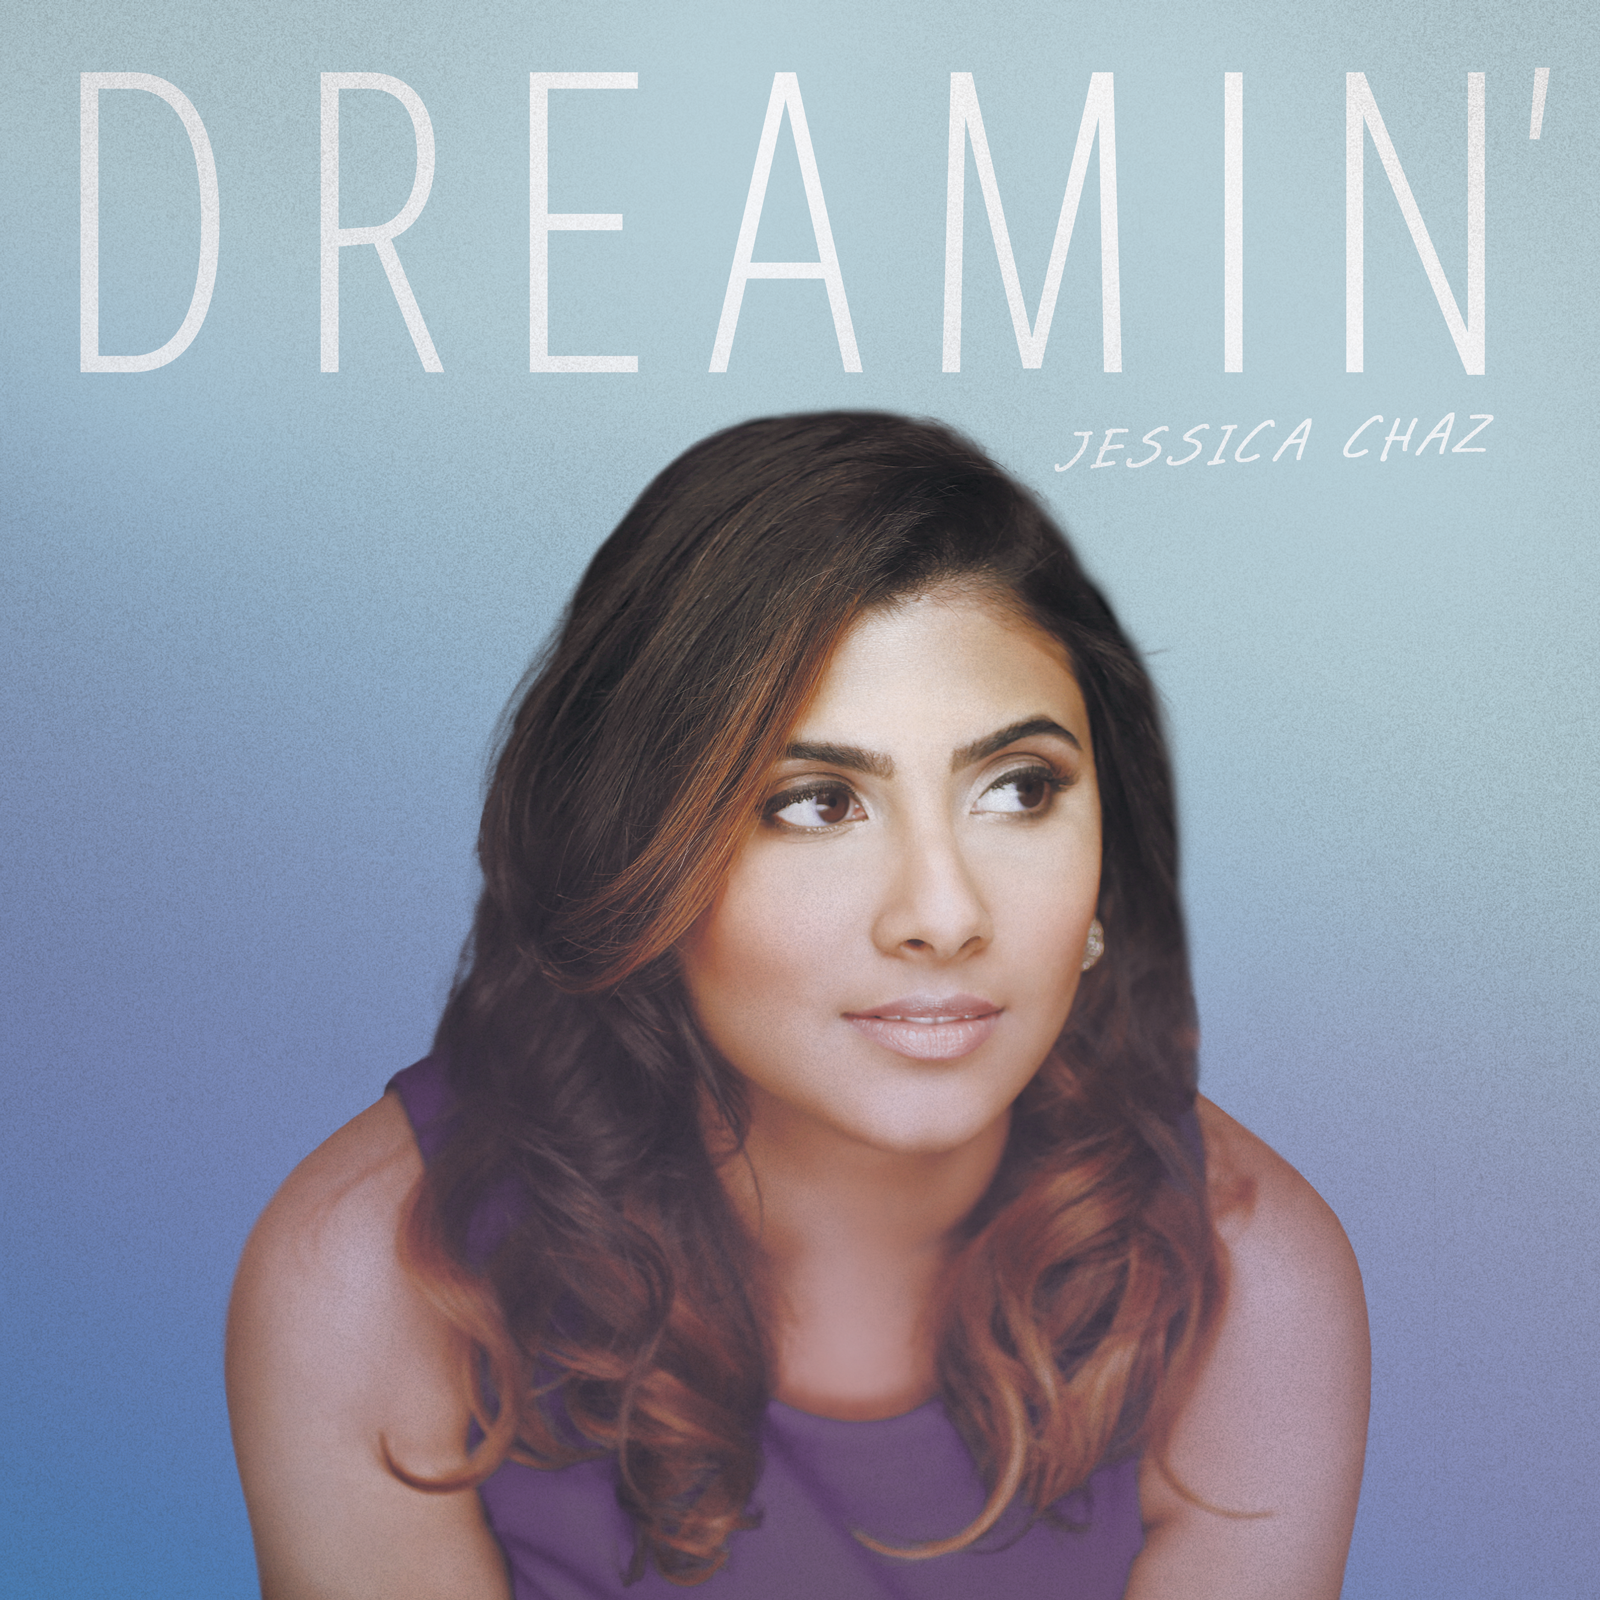 Jessica Chaz - Dreamin' EP Artwork.png